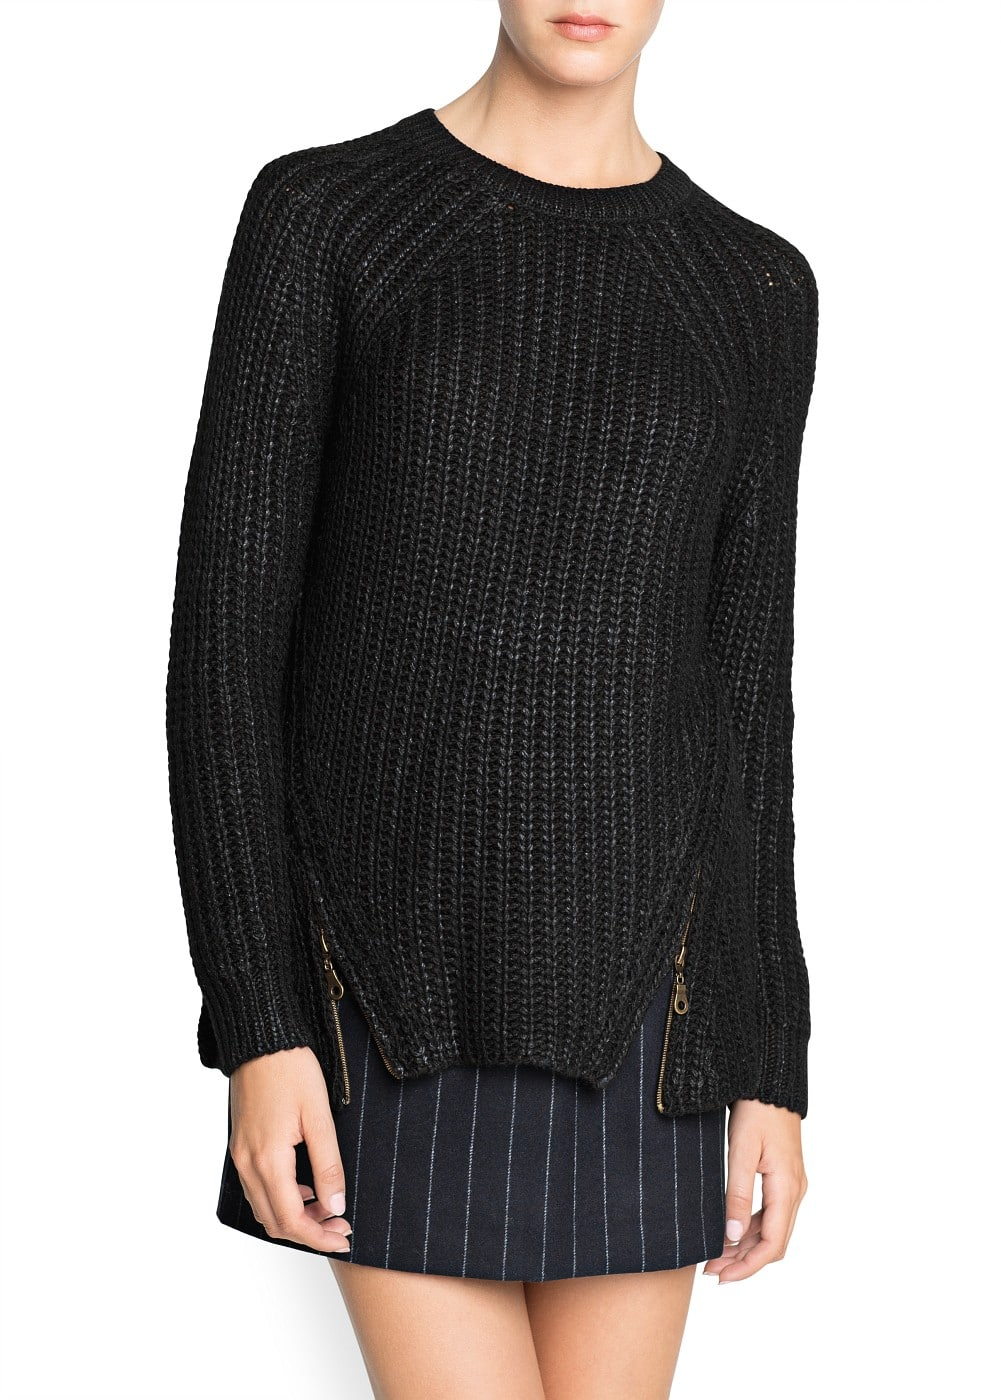 Zip chunky knit sweater